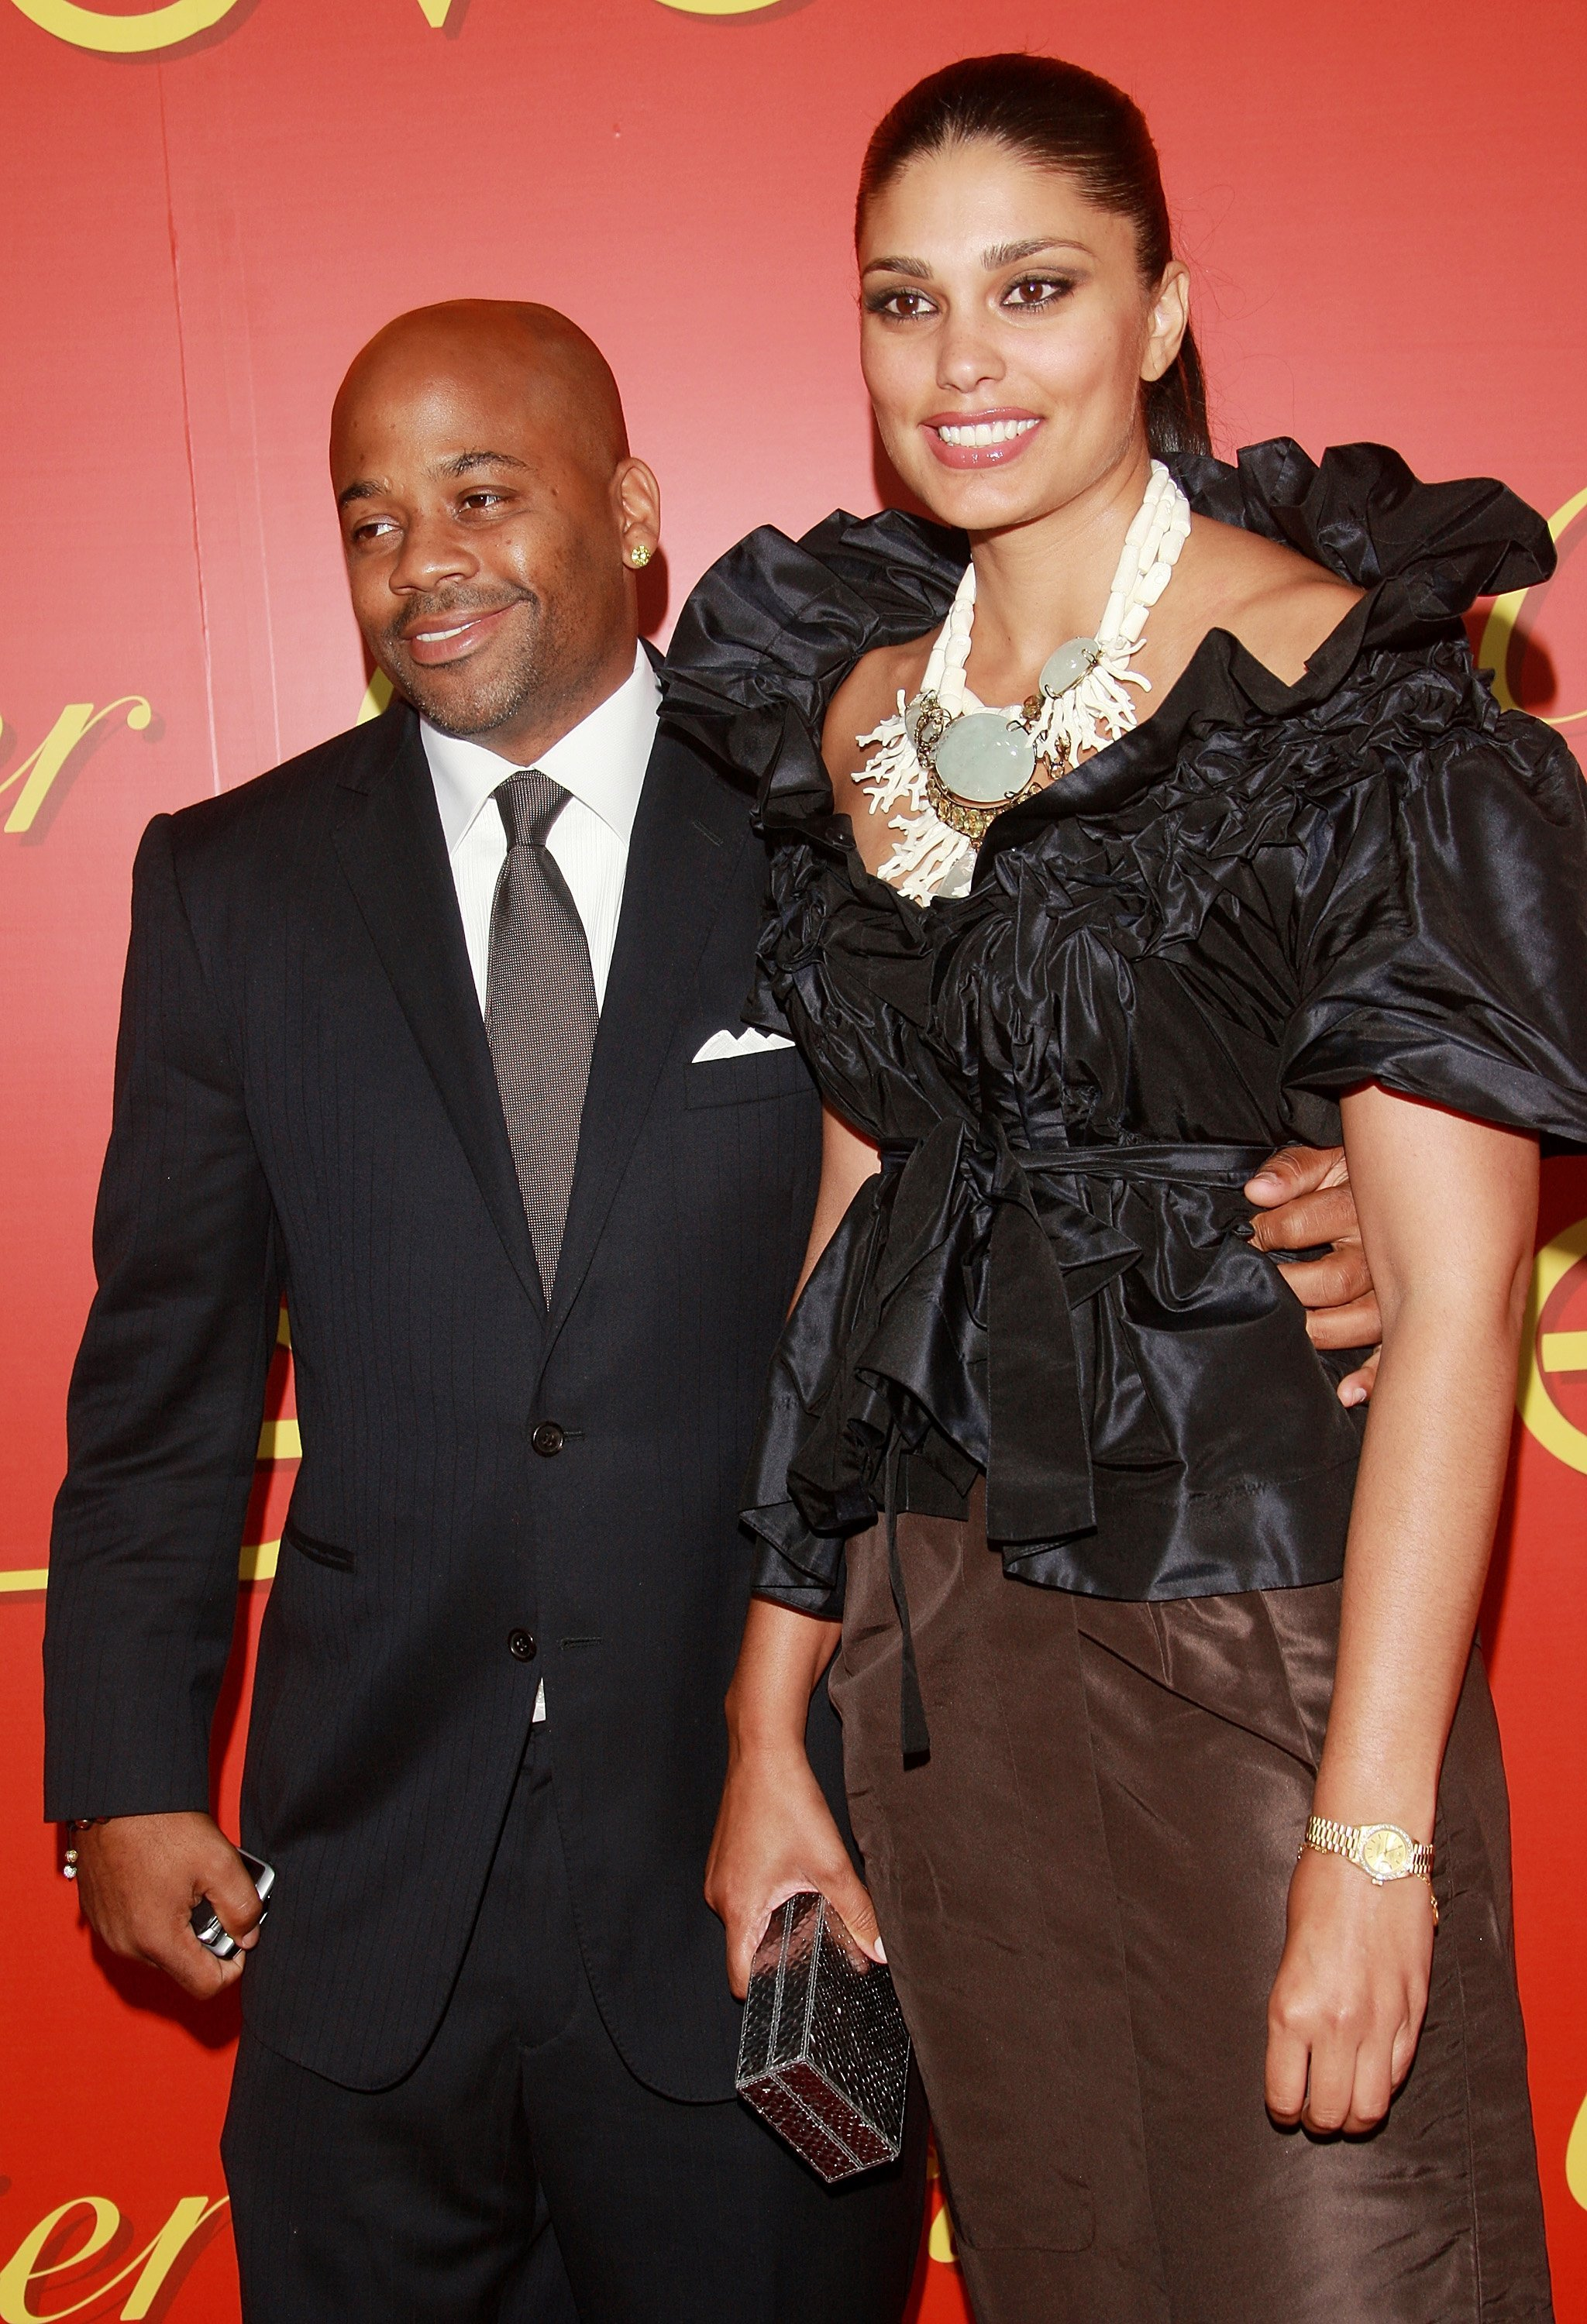 Damon Dash and Rachel Roy attend a cocktail party in celebration of The Cartier Charity Love Bracelet at The Cartier Mansion, June 7, 2007, in New York City. | Source: Getty Images.